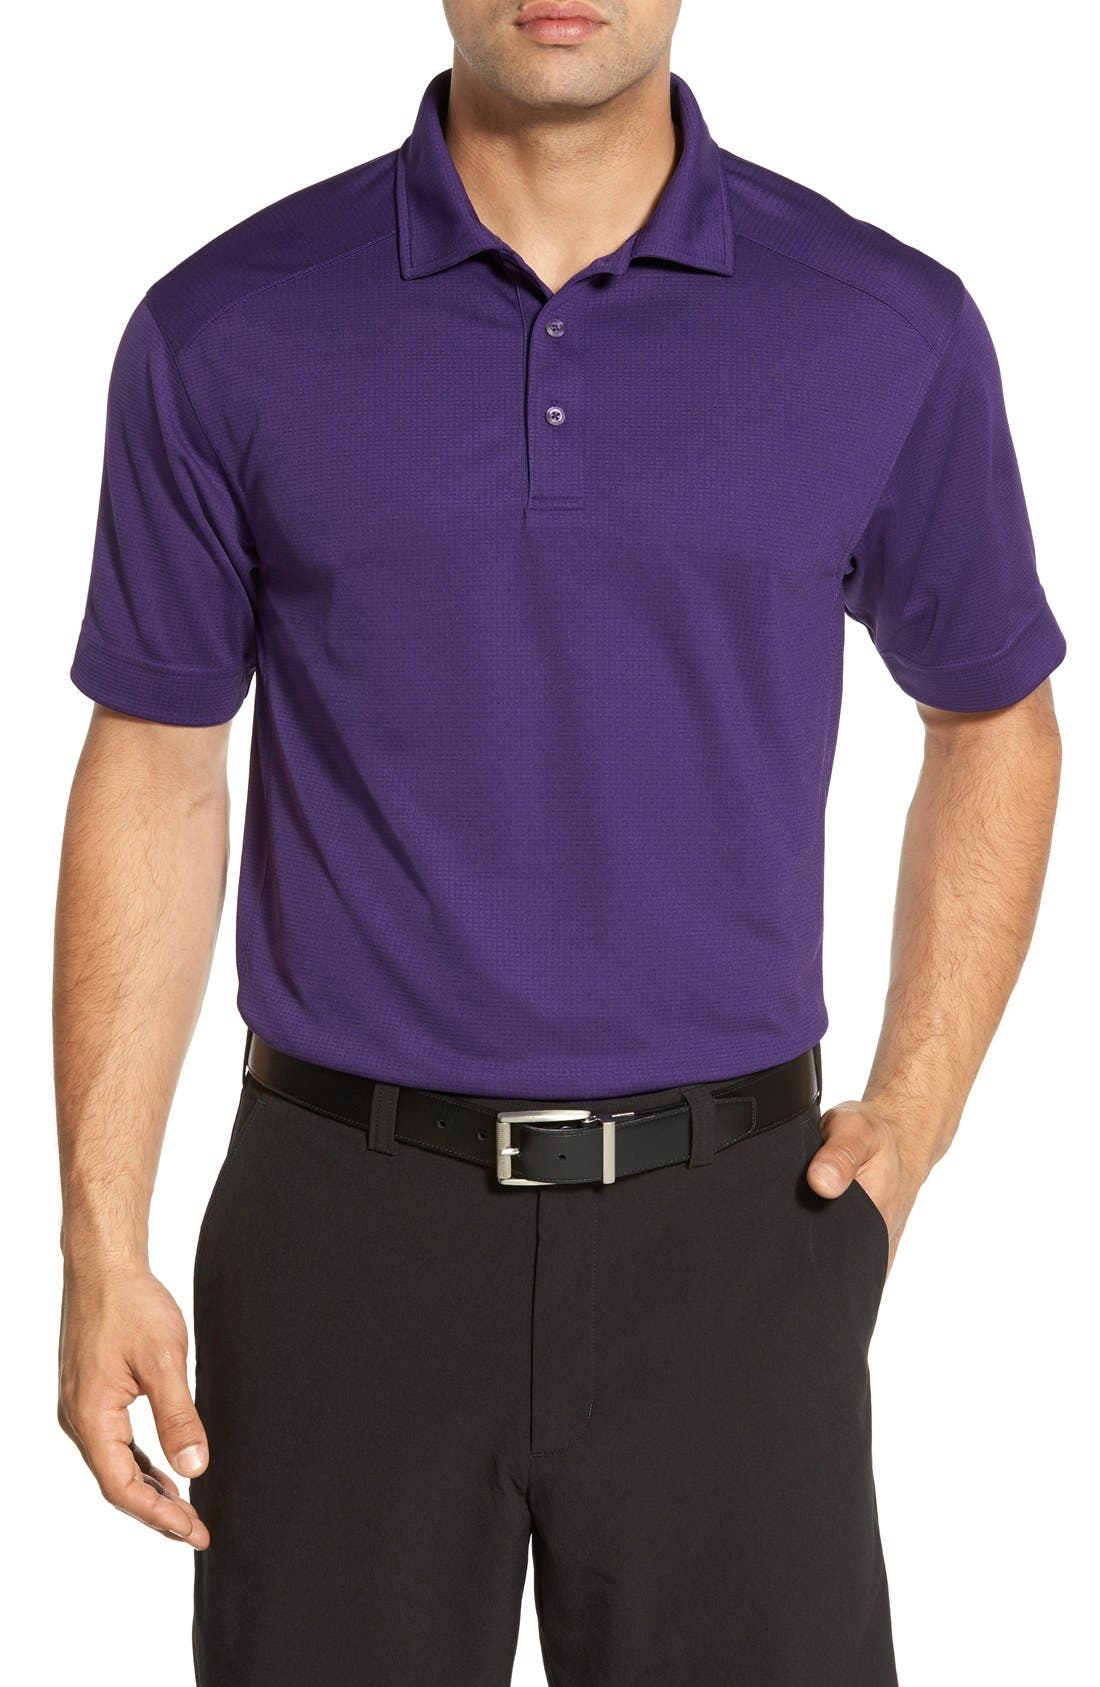 'Genre' DryTec Moisture Wicking Polo,                             Main thumbnail 1, color,                             COLLEGE PURPLE